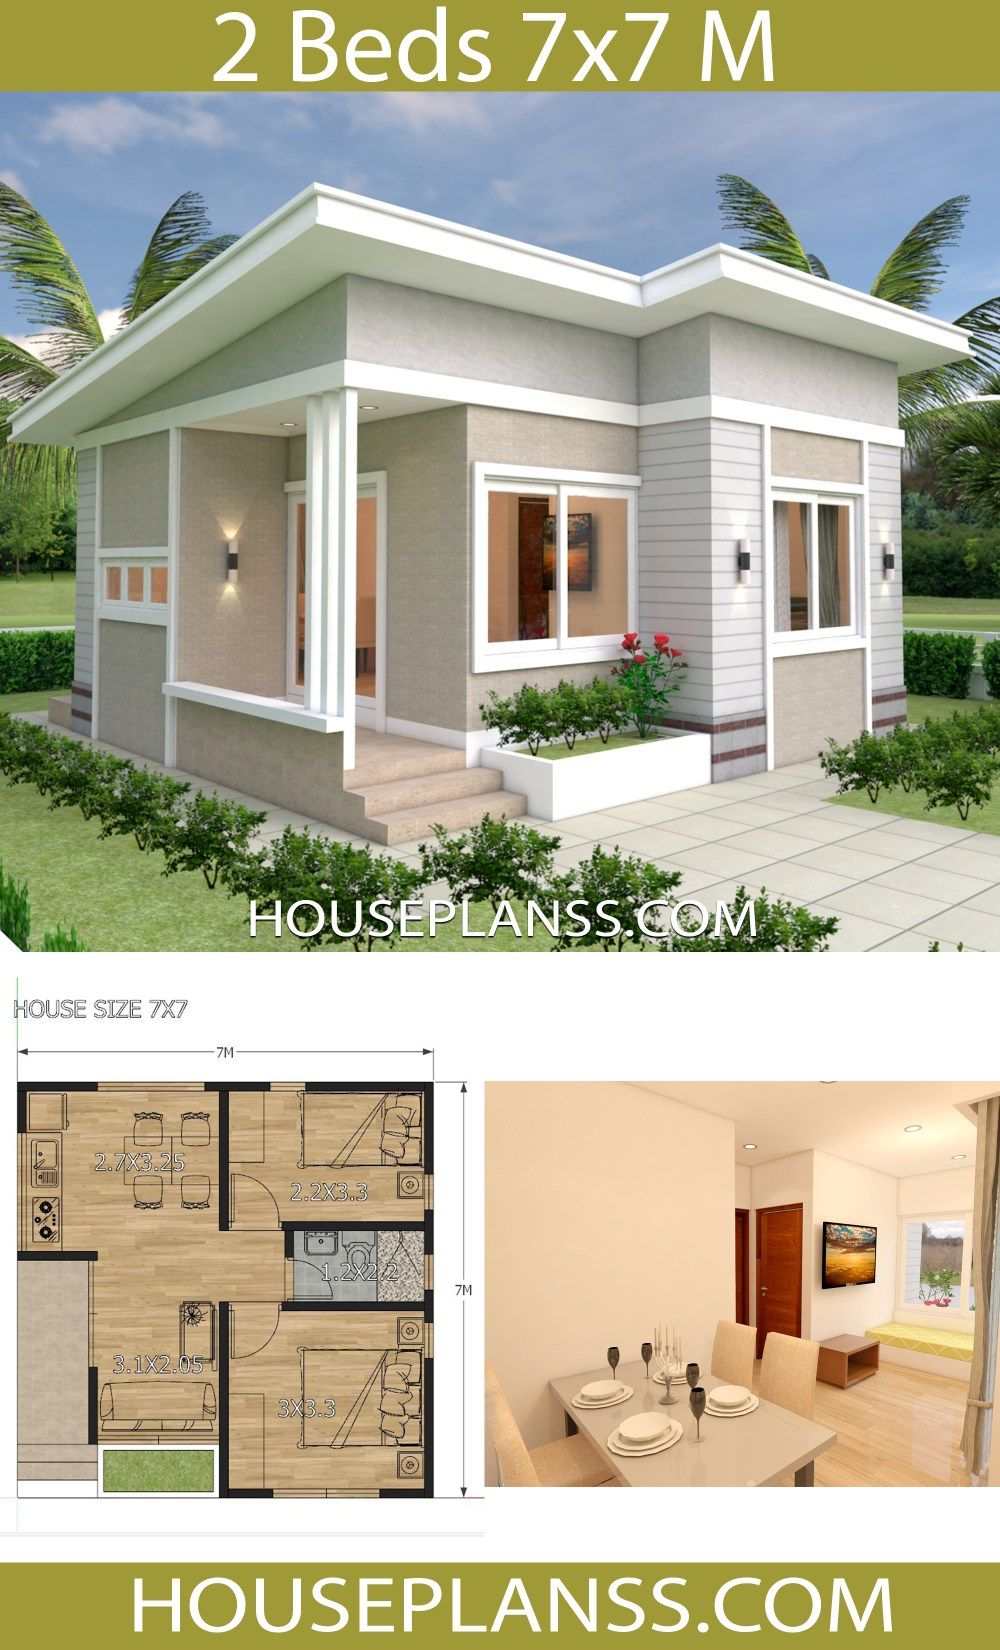 Small House Design Plans 7x7 With 2 Bedrooms House Plans 3d Small House Design Plans Small House Design Modern House Plans